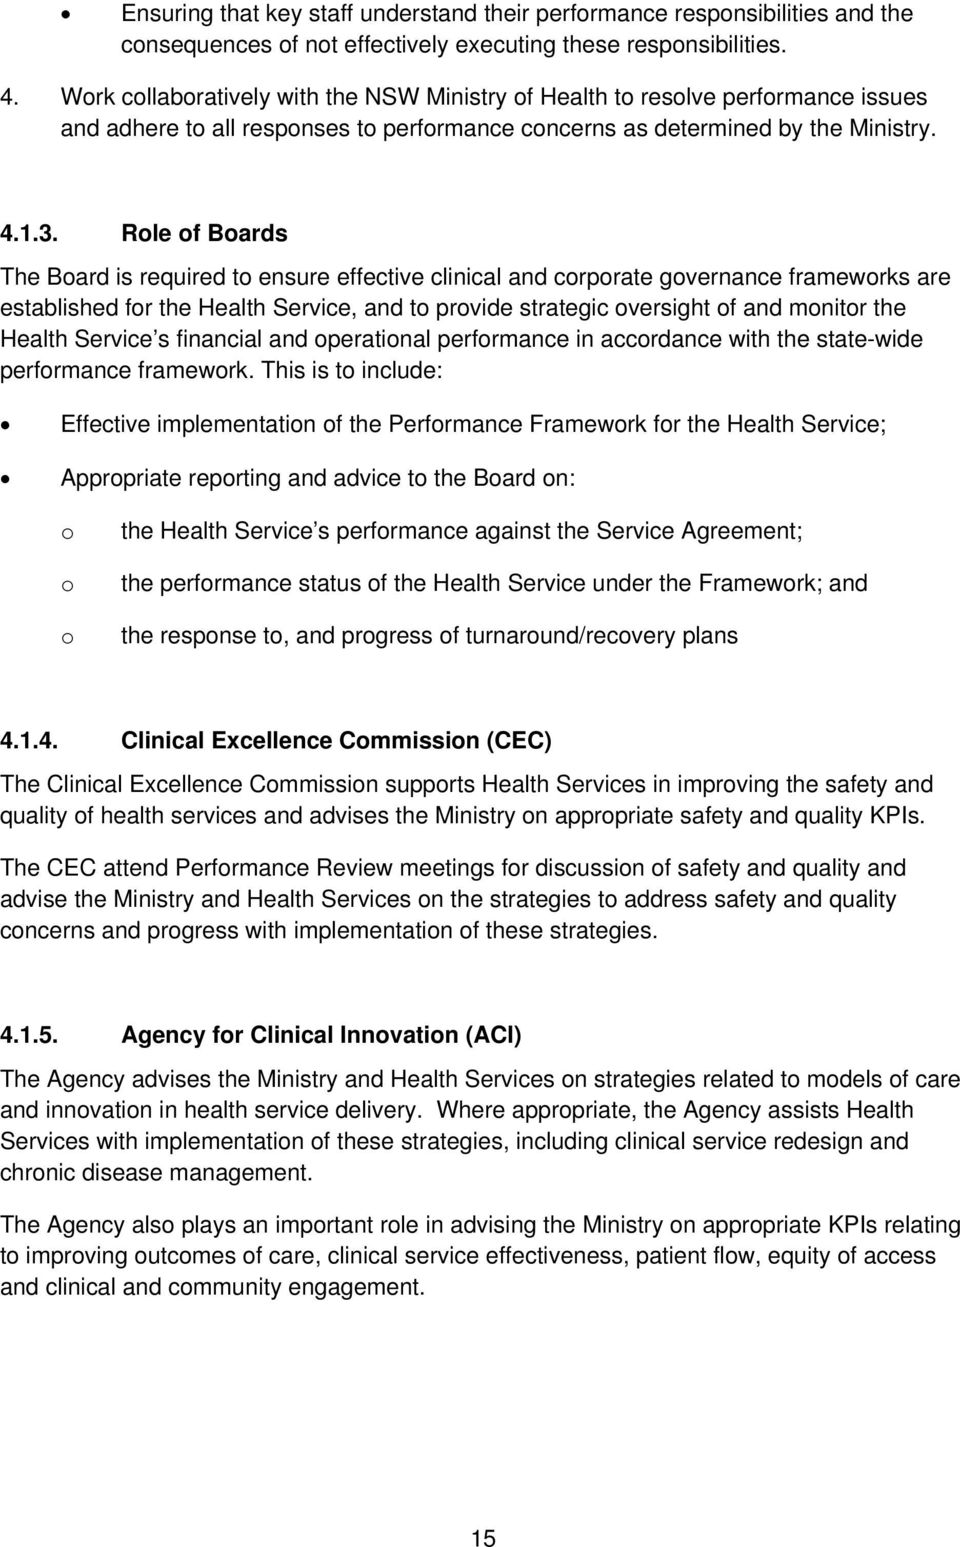 Role of Boards The Board is required to ensure effective clinical and corporate governance frameworks are established for the Health Service, and to provide strategic oversight of and monitor the